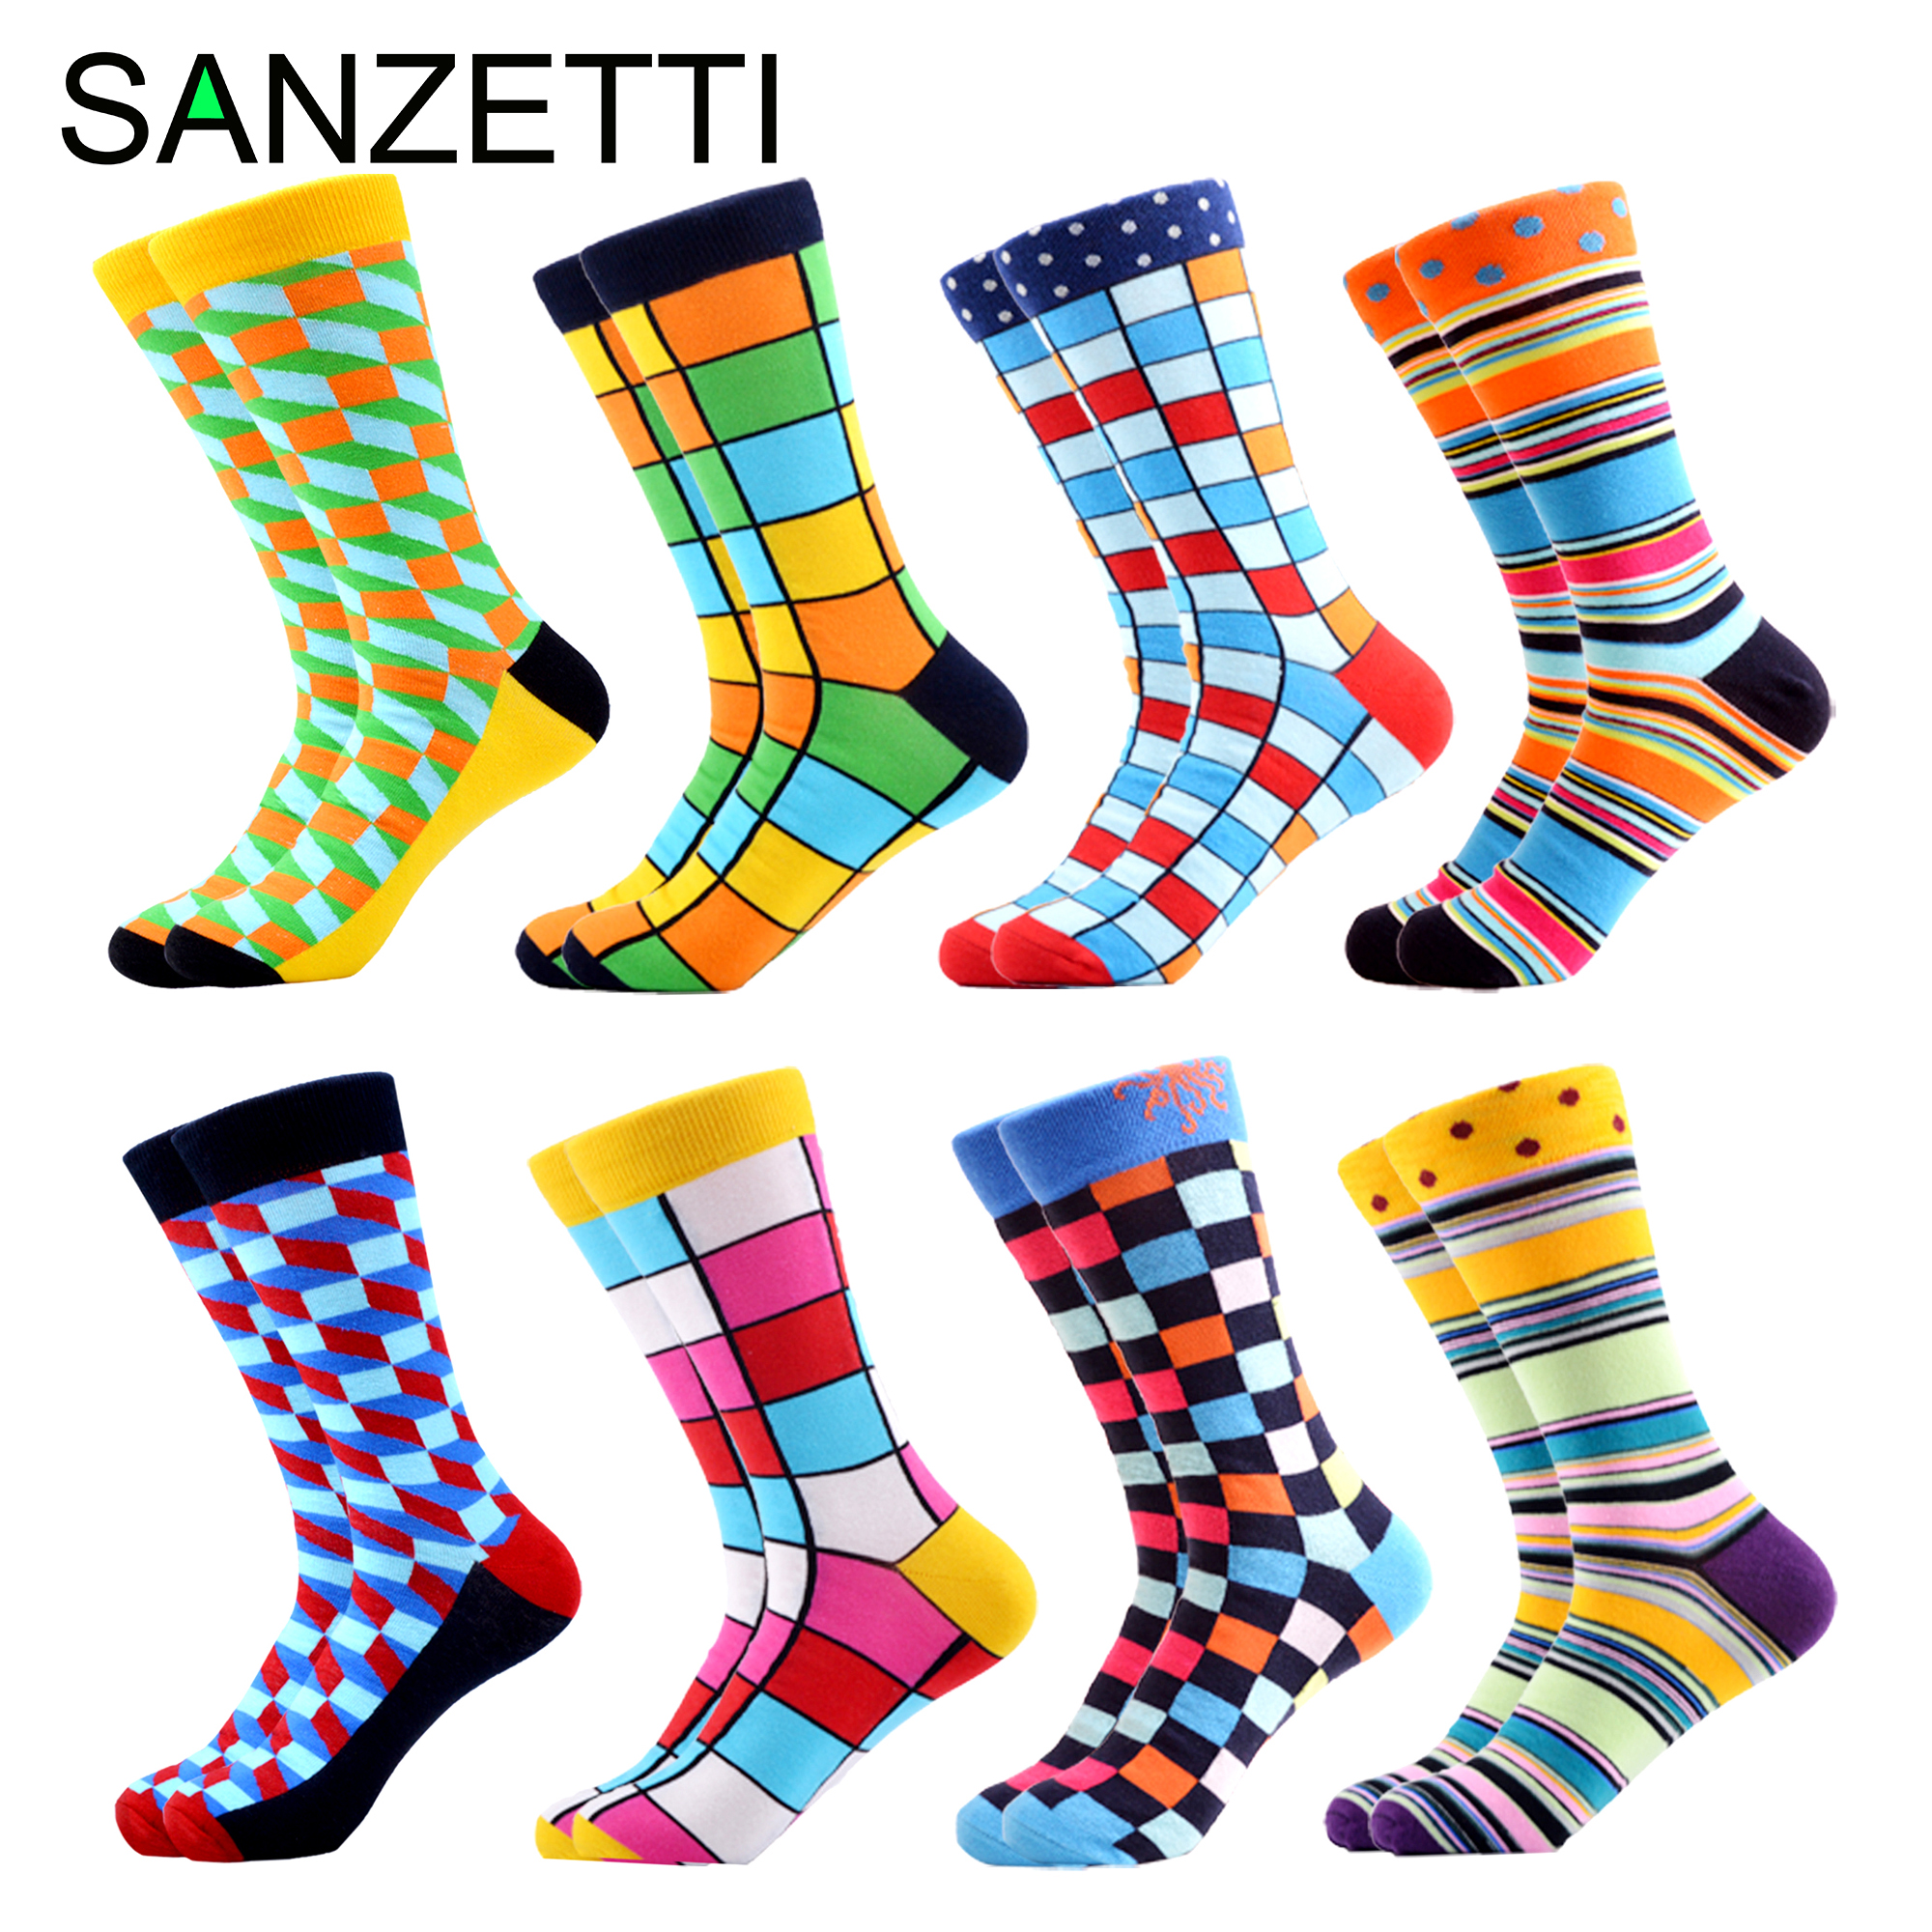 SANZETTI 8 Pairs/Lot Cool Men's Colorful Funny Combed Cotton Novelty Socks Casual Crew Socks Bright Party Dress Socks For Gifts